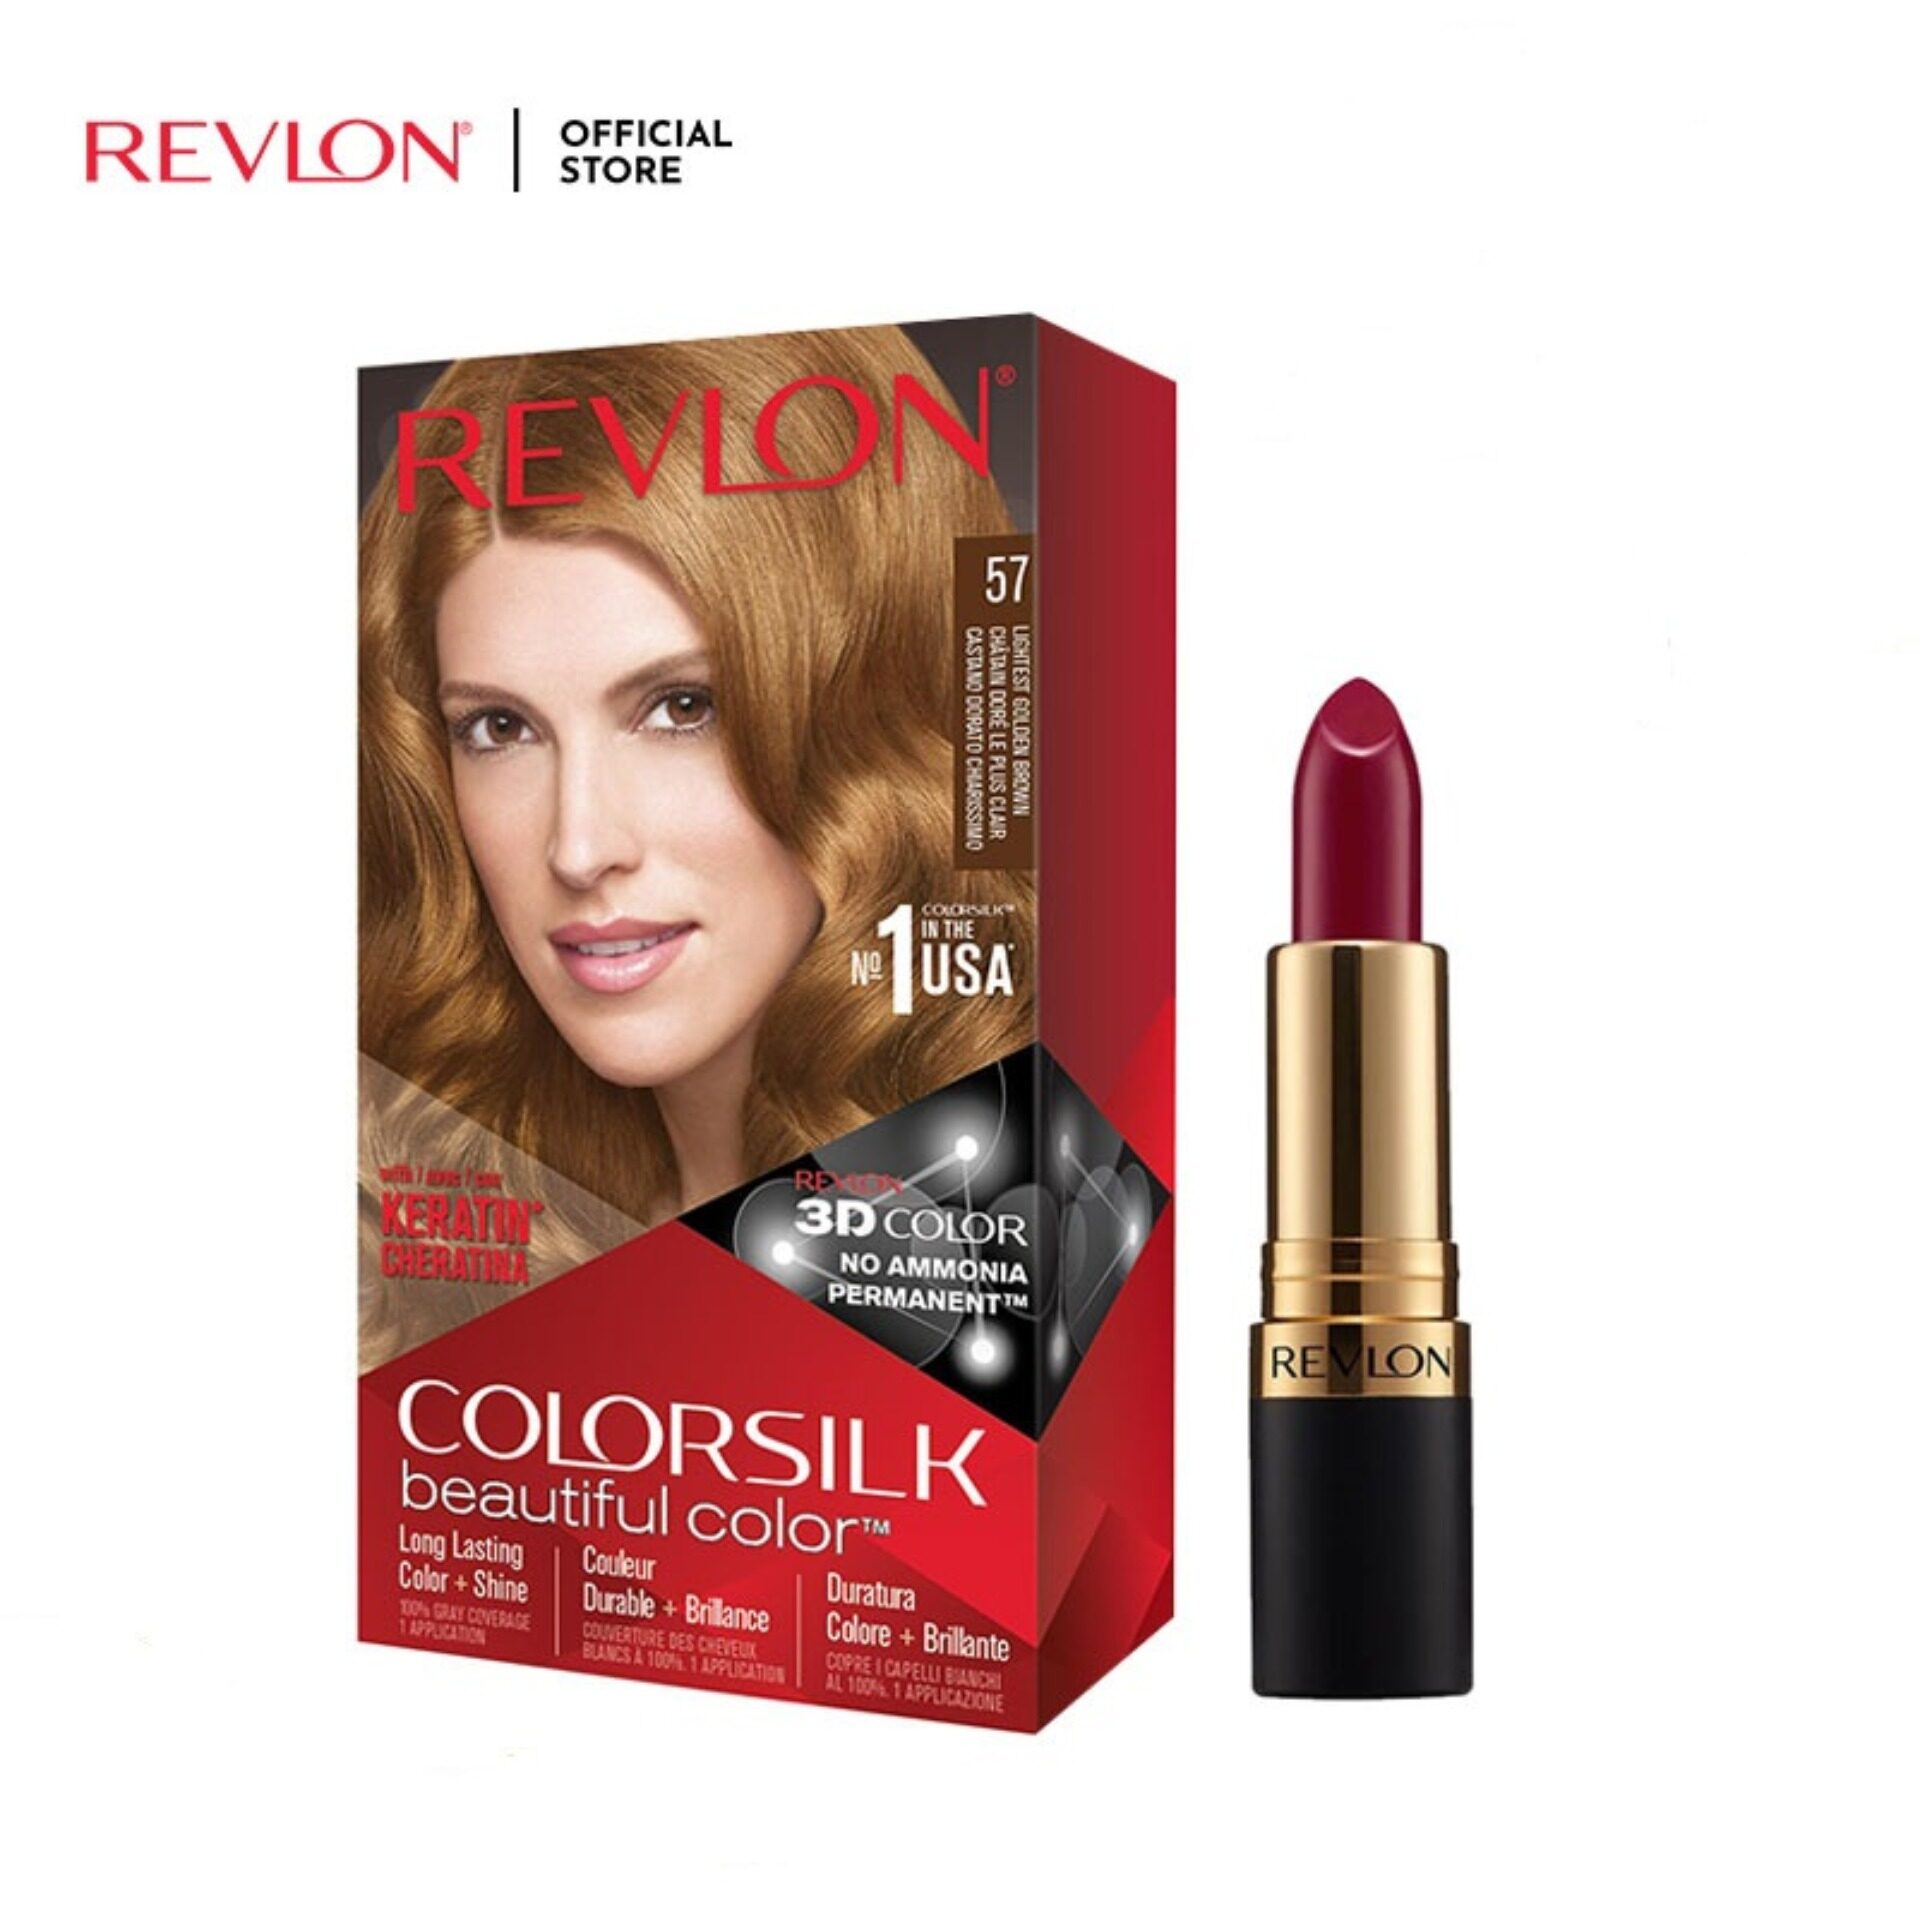 Revlon ColorSilk Lightest Golden Brown Hair Color FREE Super Lustrous Power Move Lipstick